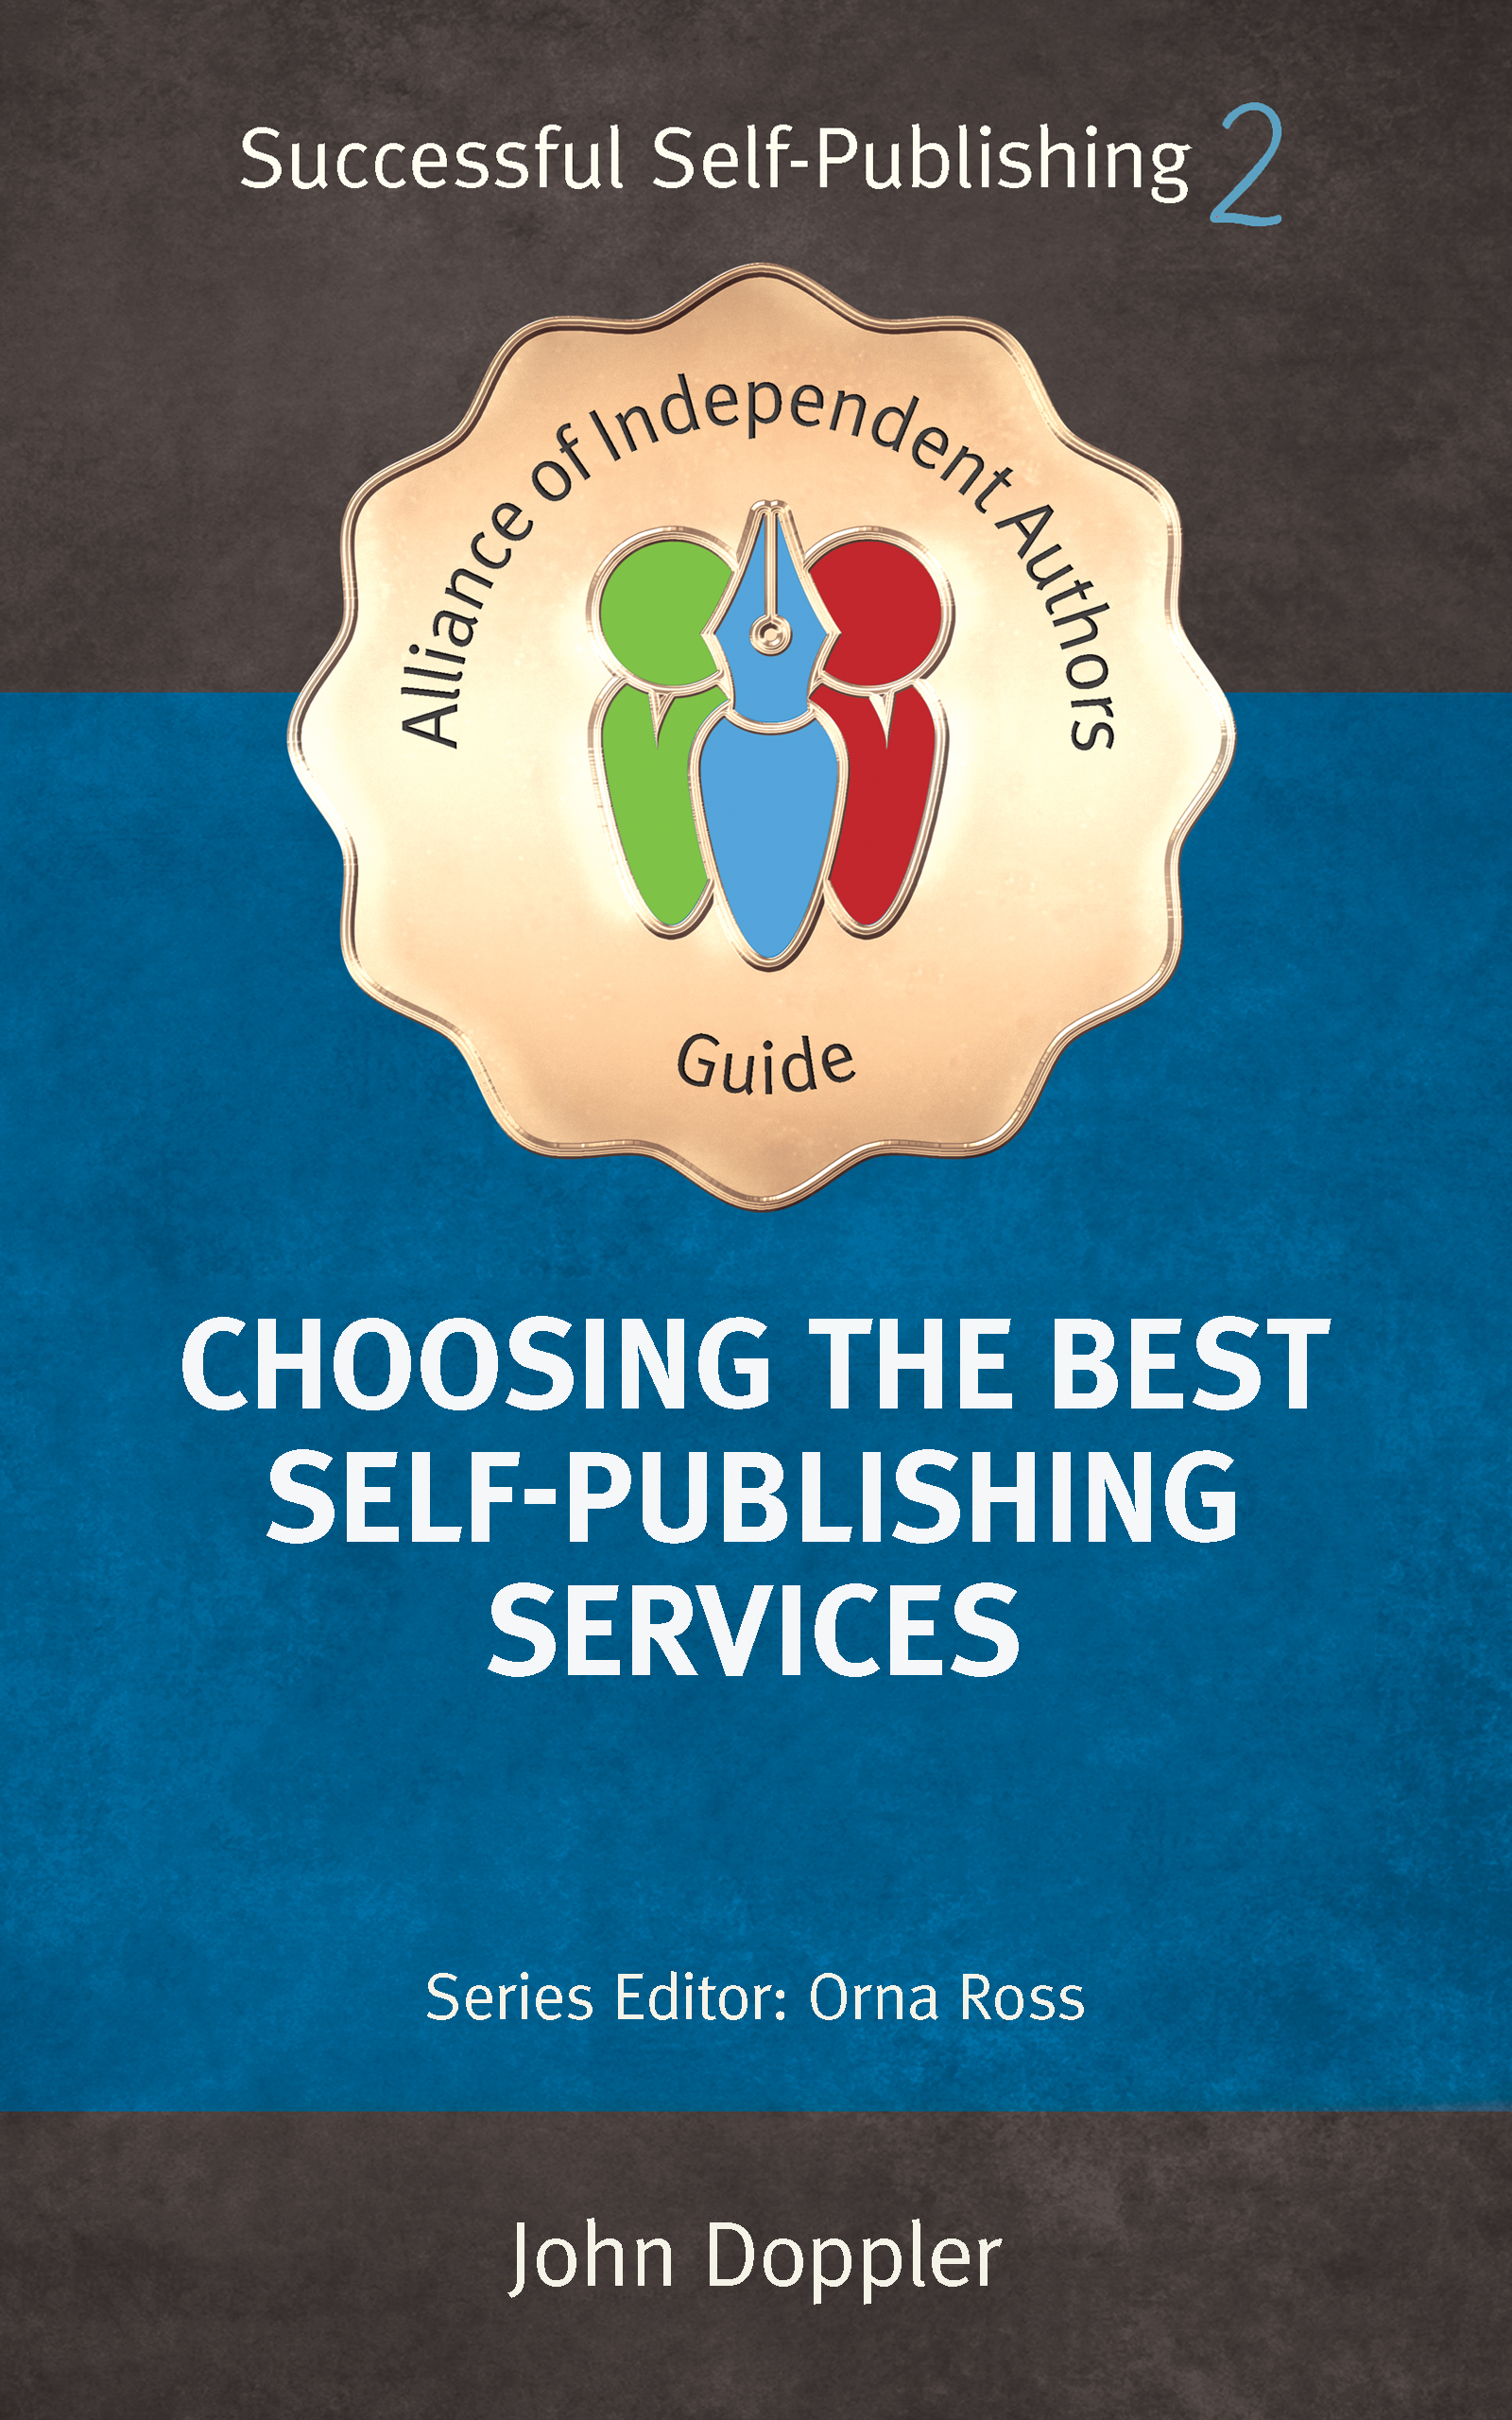 Choosing the Best Self-Publishing Companies and Services: How To Self-Publish Your Book